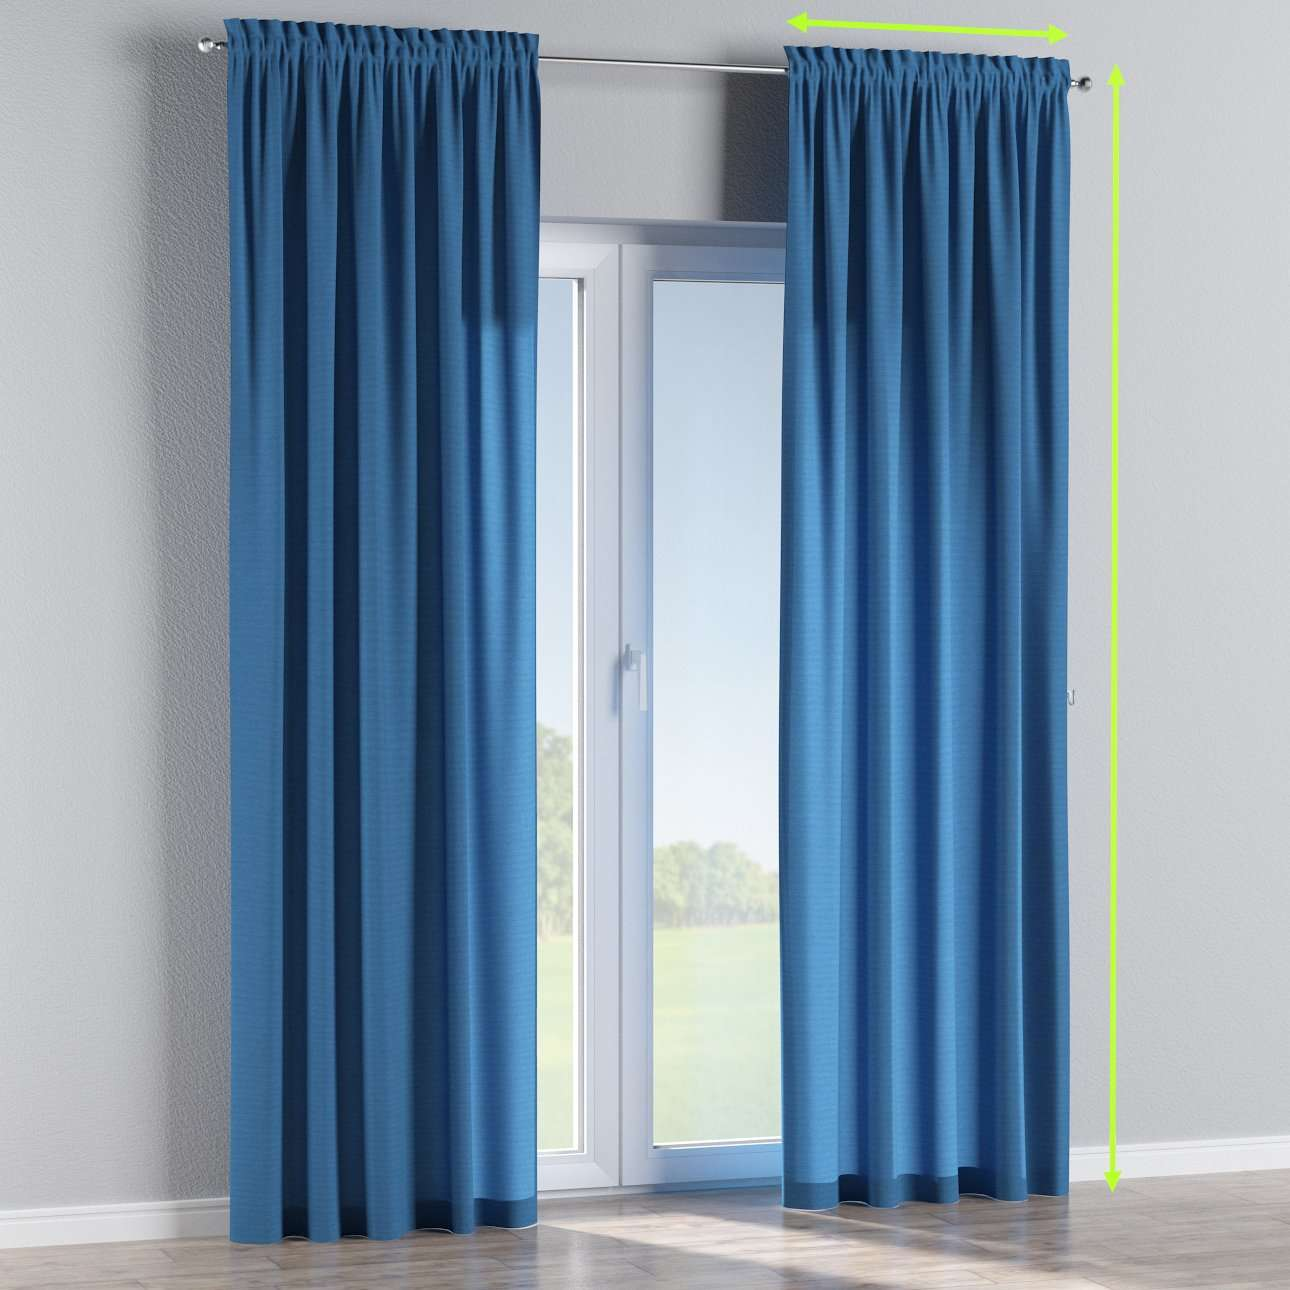 Slot and frill curtains in collection Jupiter, fabric: 127-61